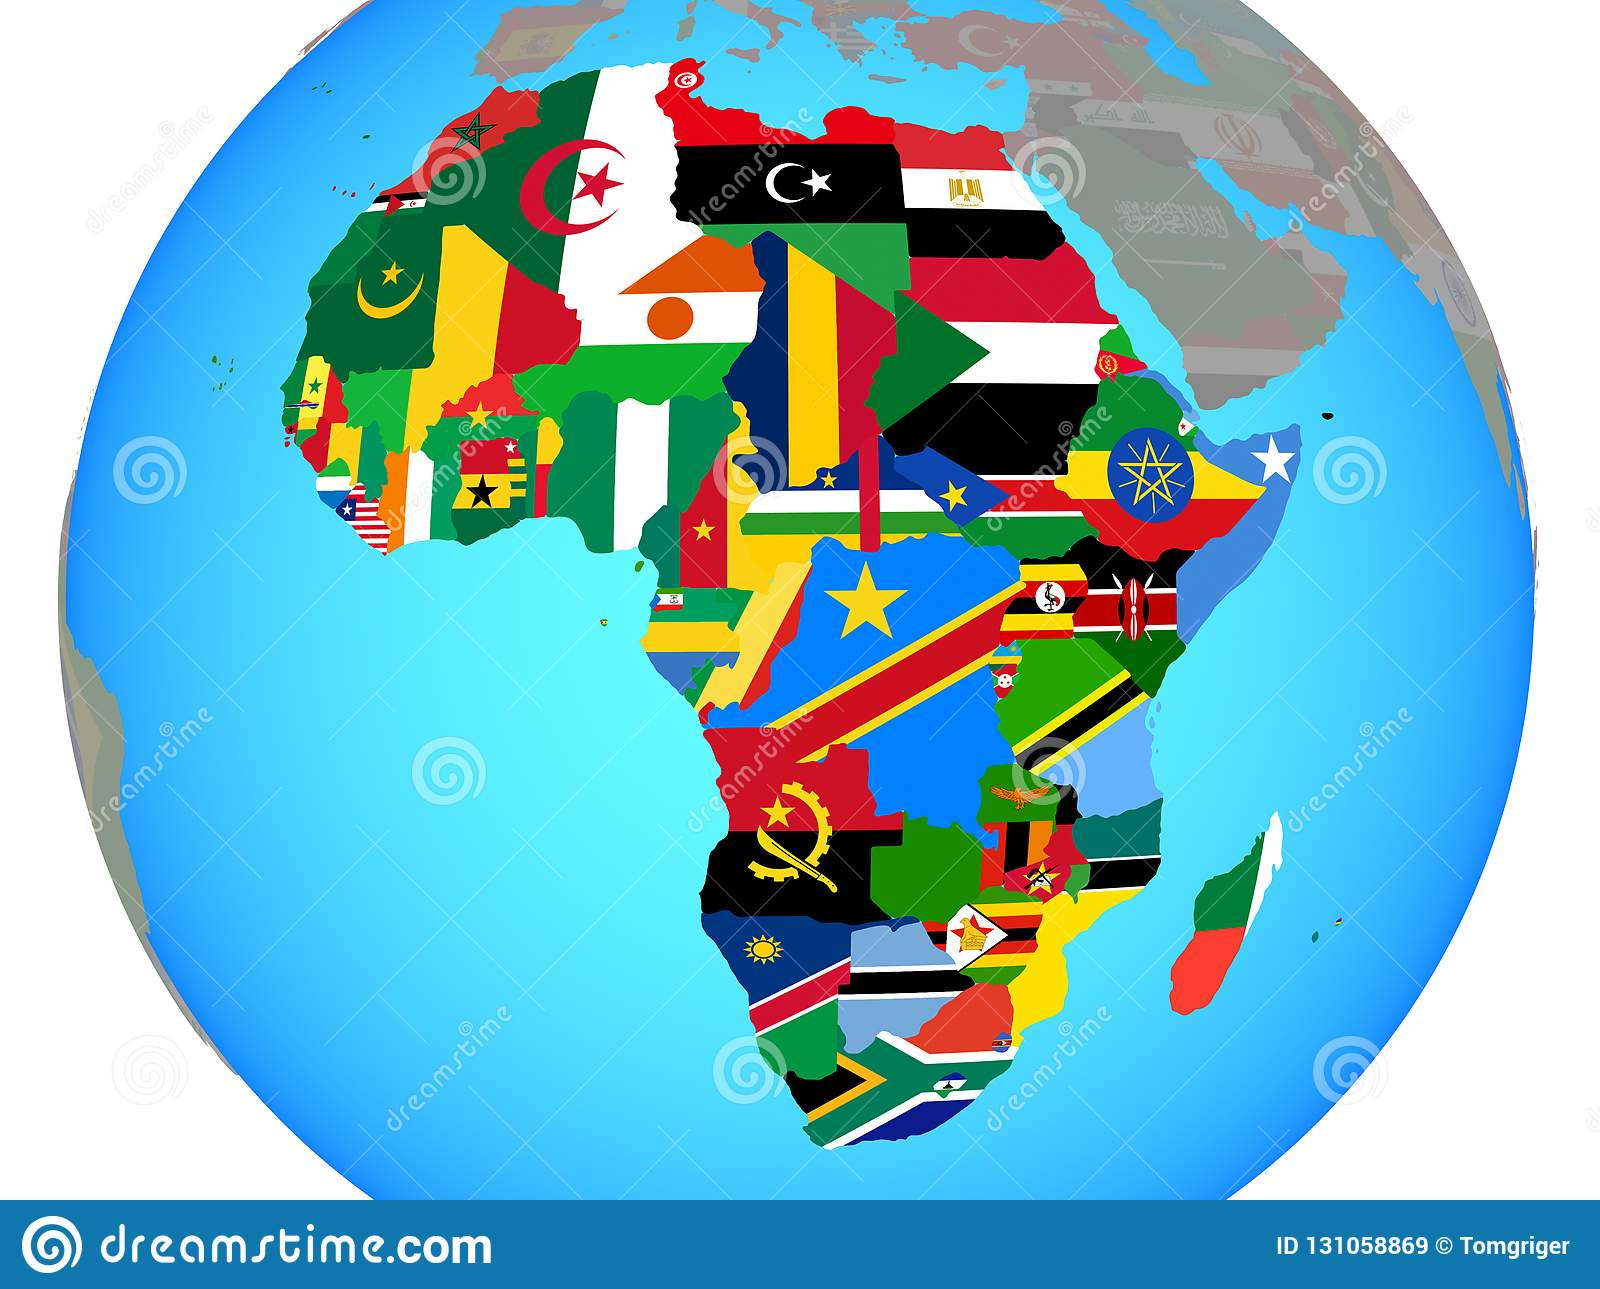 Map Of Africa With Flags.Africa With Flags On Map Stock Illustration Illustration Of